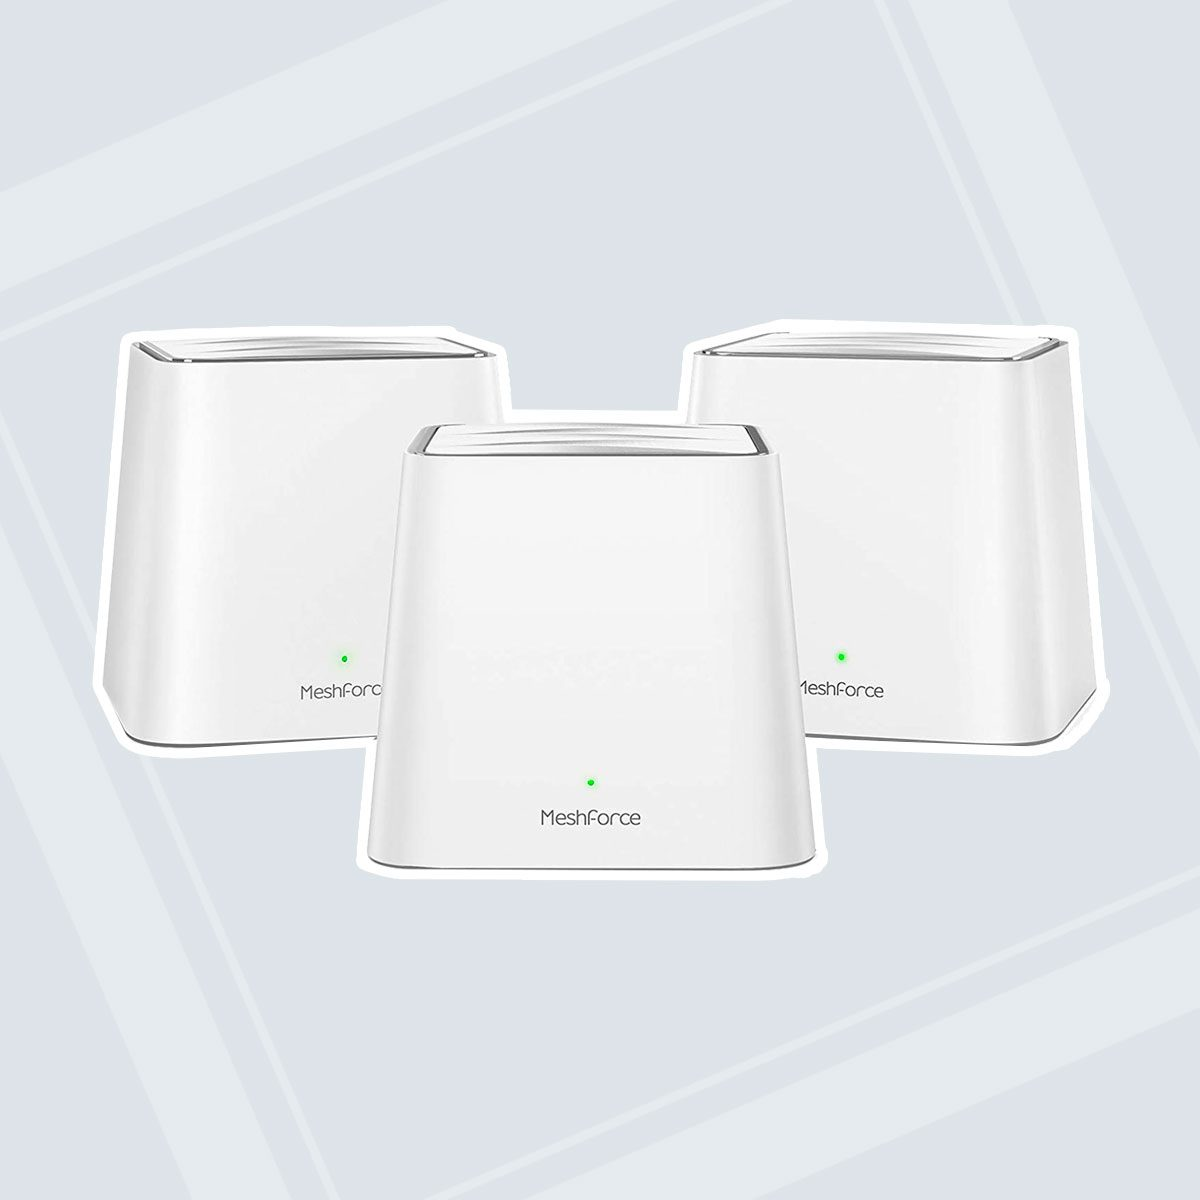 Whole Home Mesh WiFi System